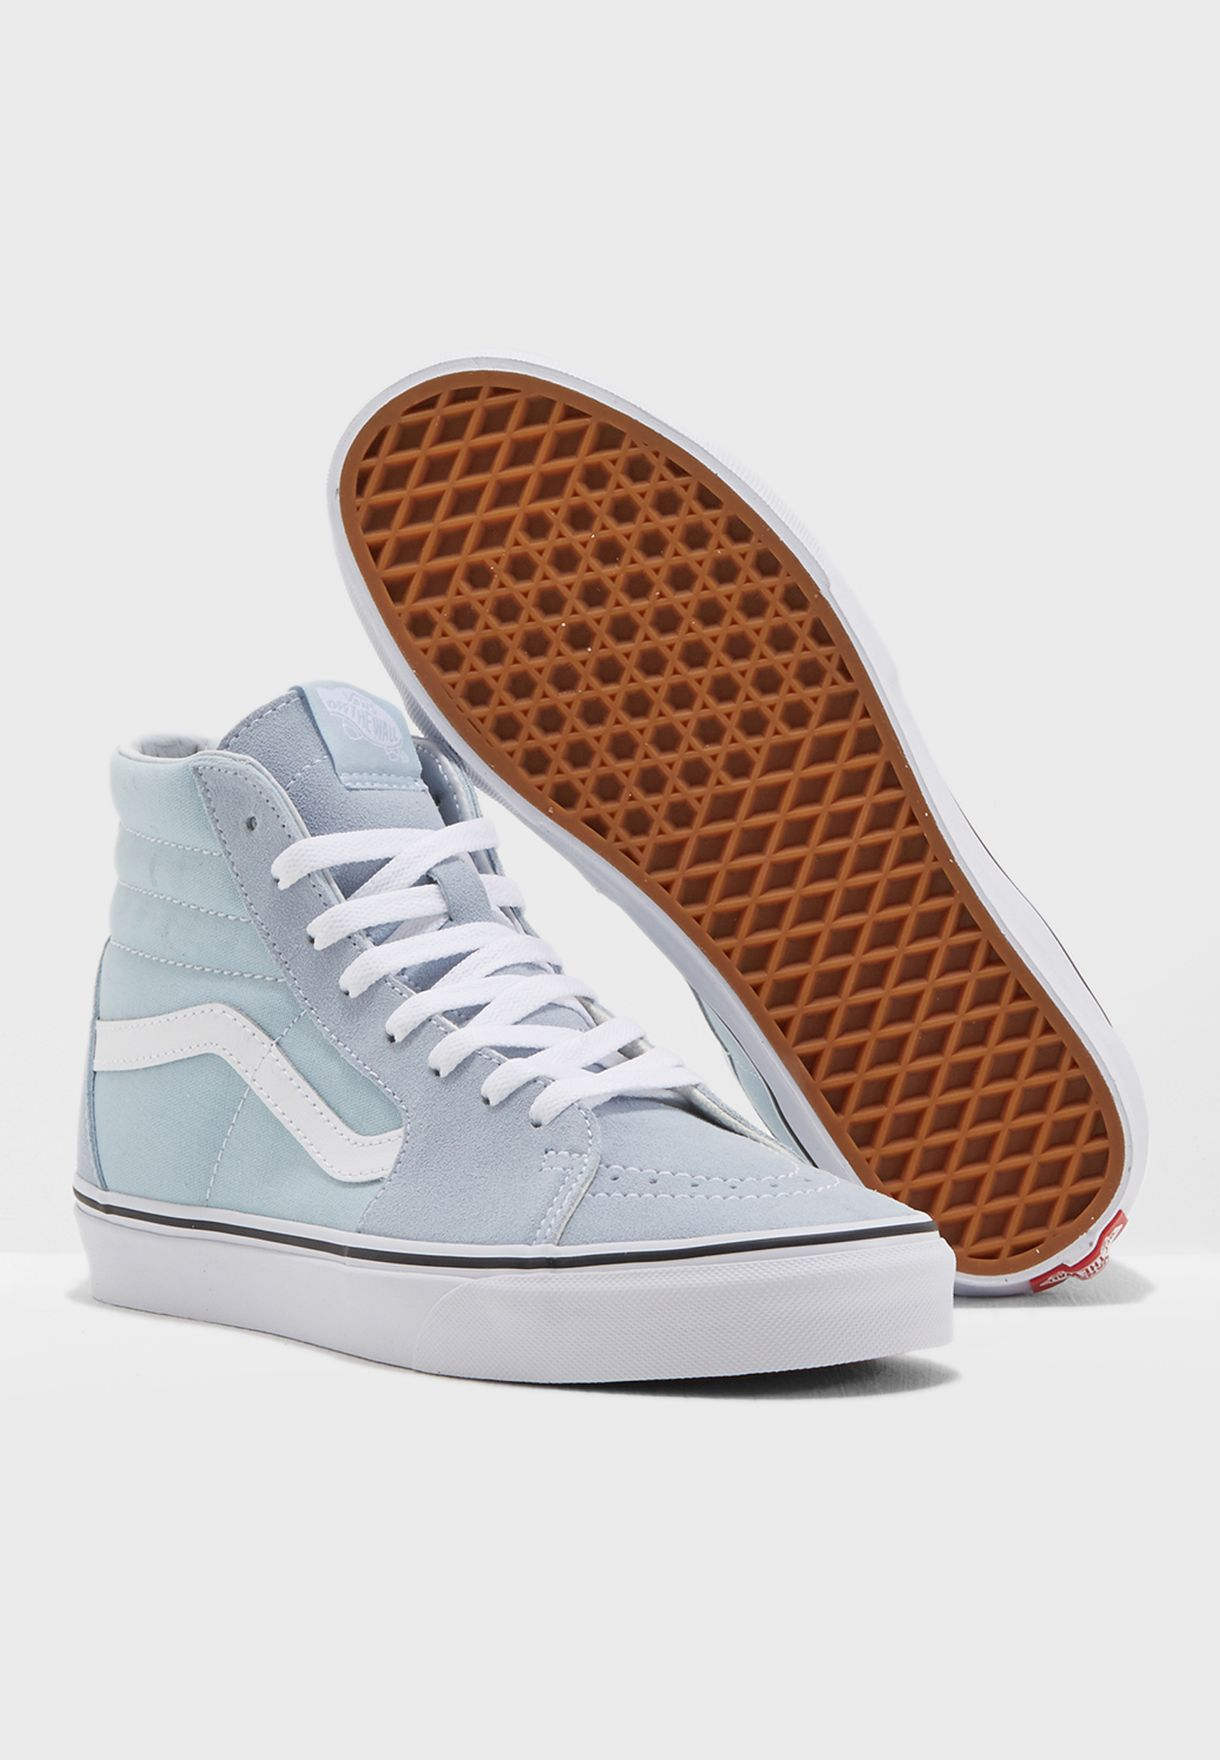 aeb8ed740851 Shop Vans blue Sk8 Hi Sneakers Baby Blue True White for Women in ...